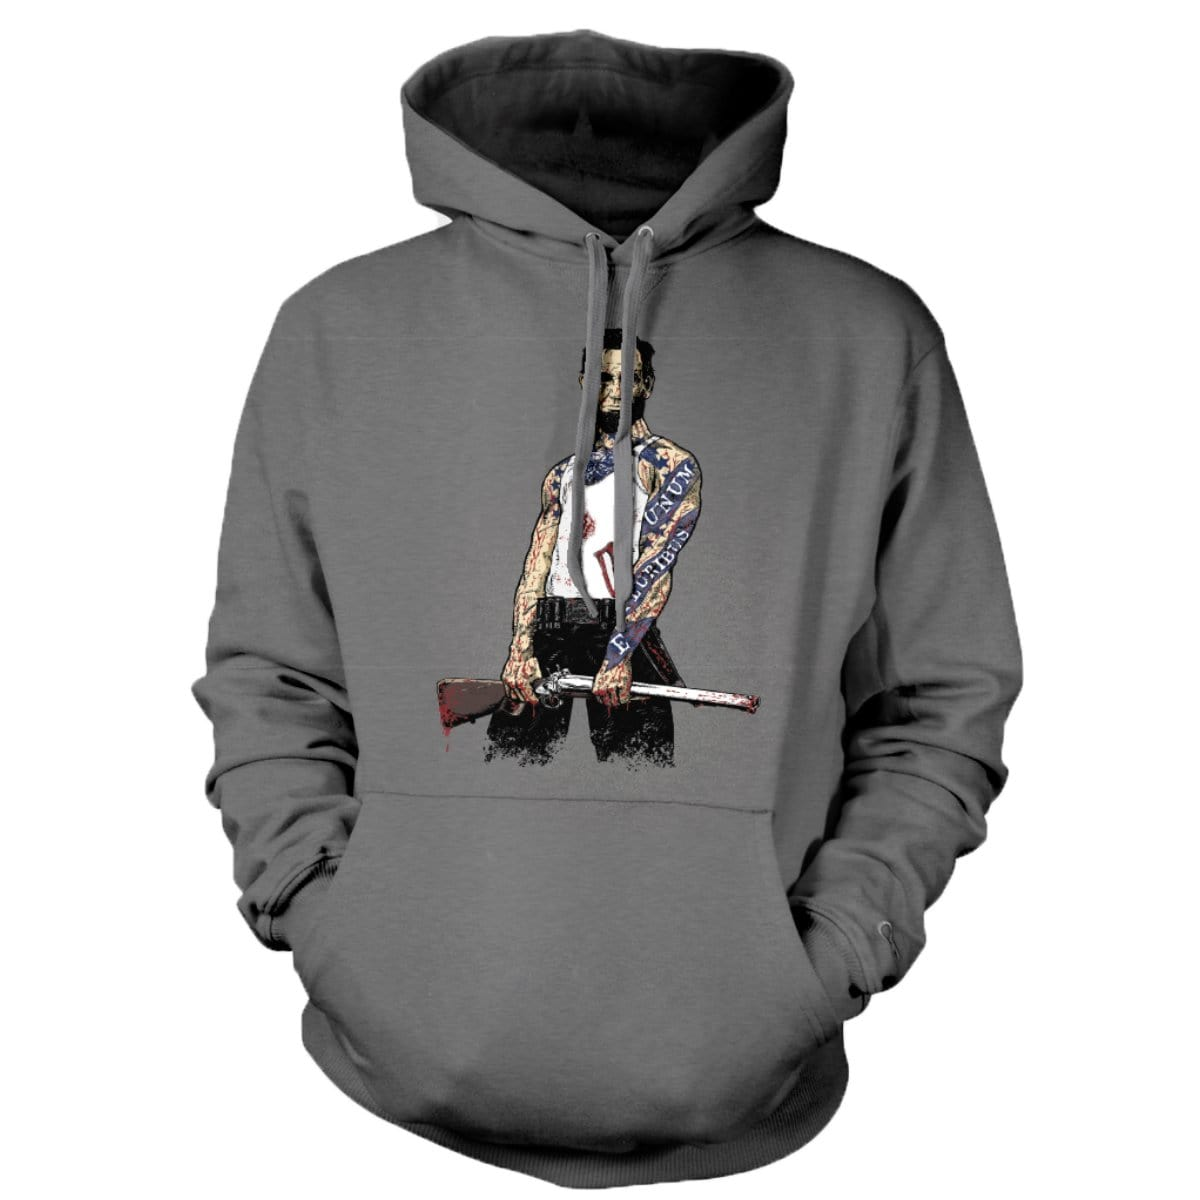 Original Pipe Hitter - Abe Hoodie - Pipe Hitters Union